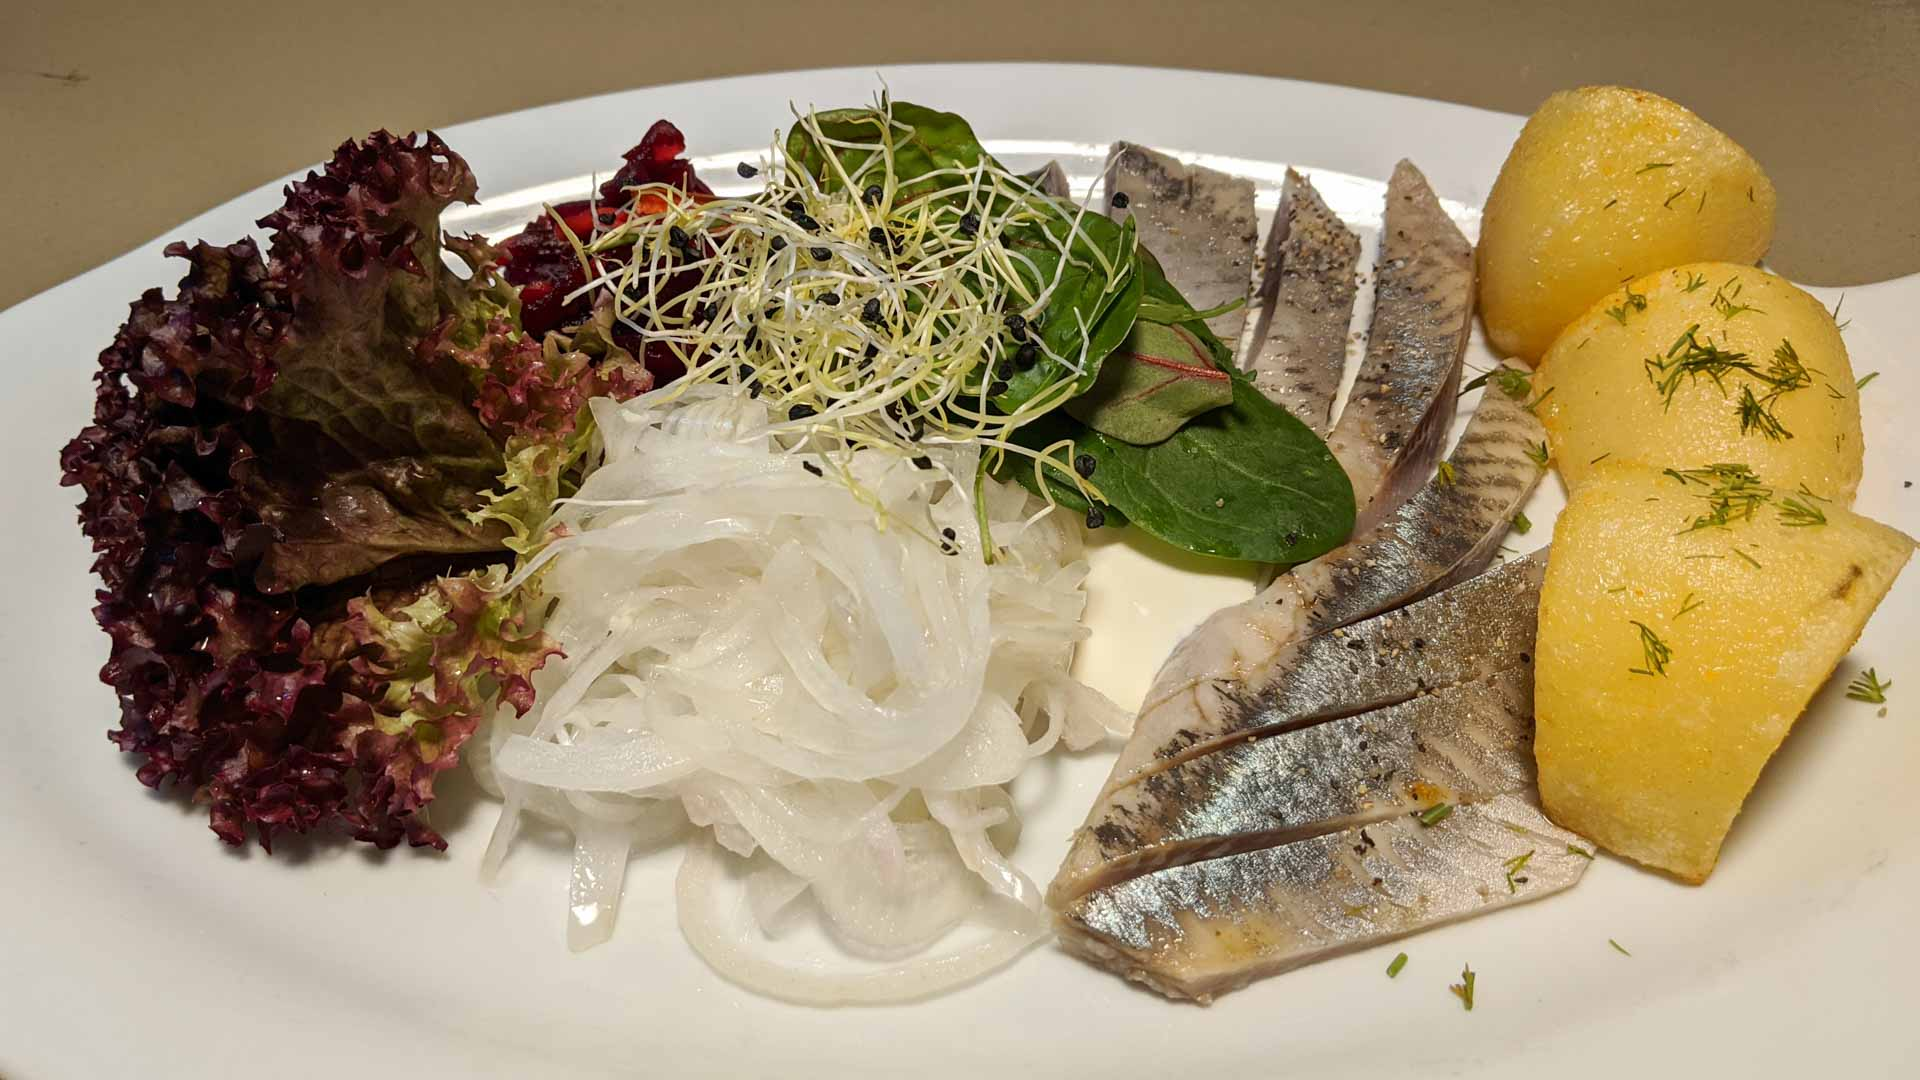 Herring served in the Baltics